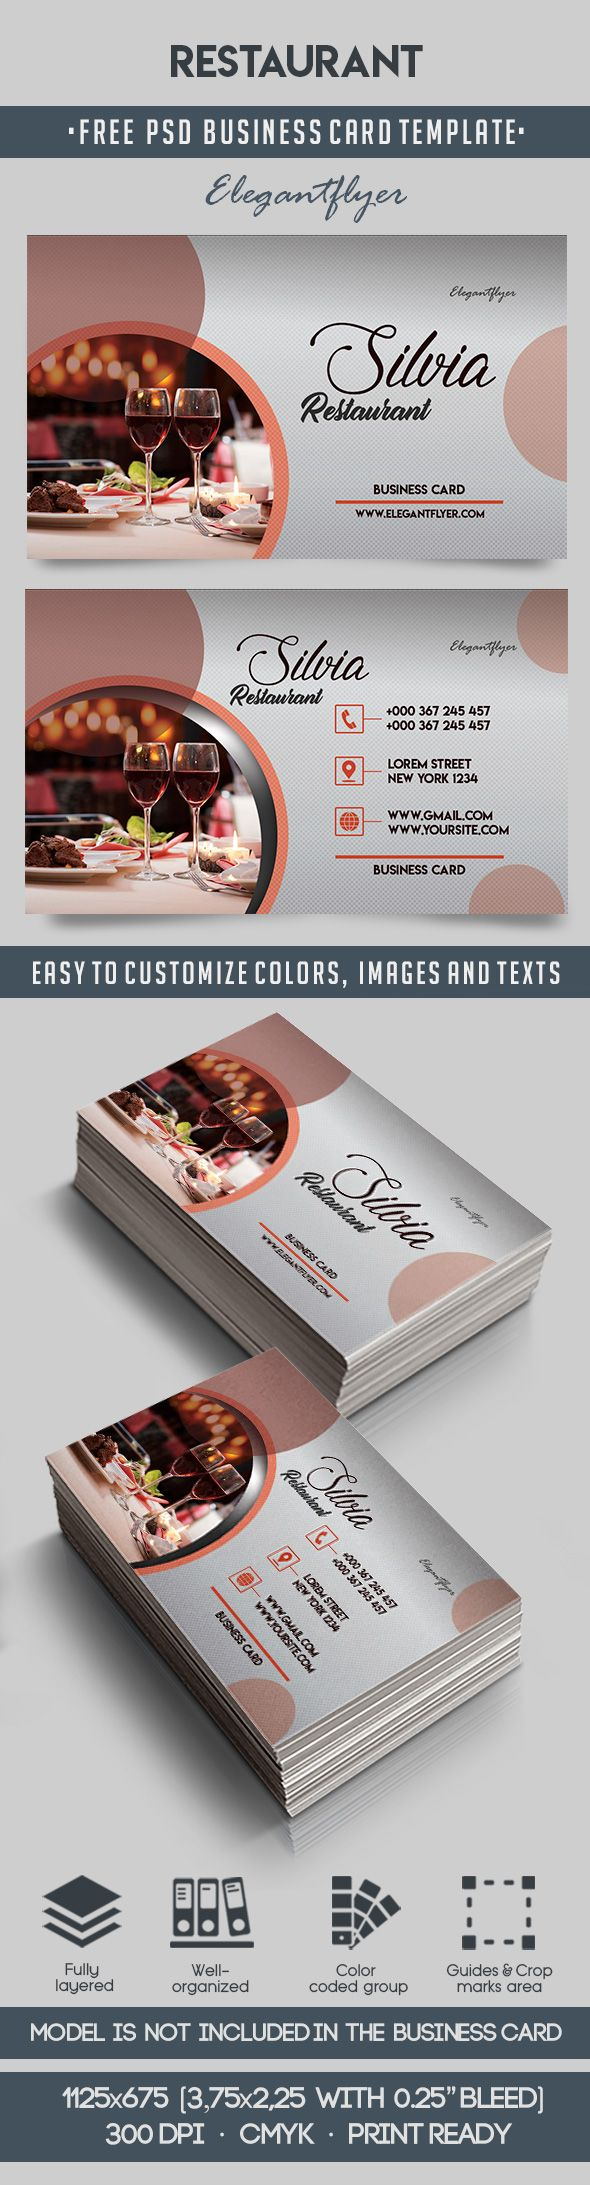 Restaurant – Free Business Card Templates PSD